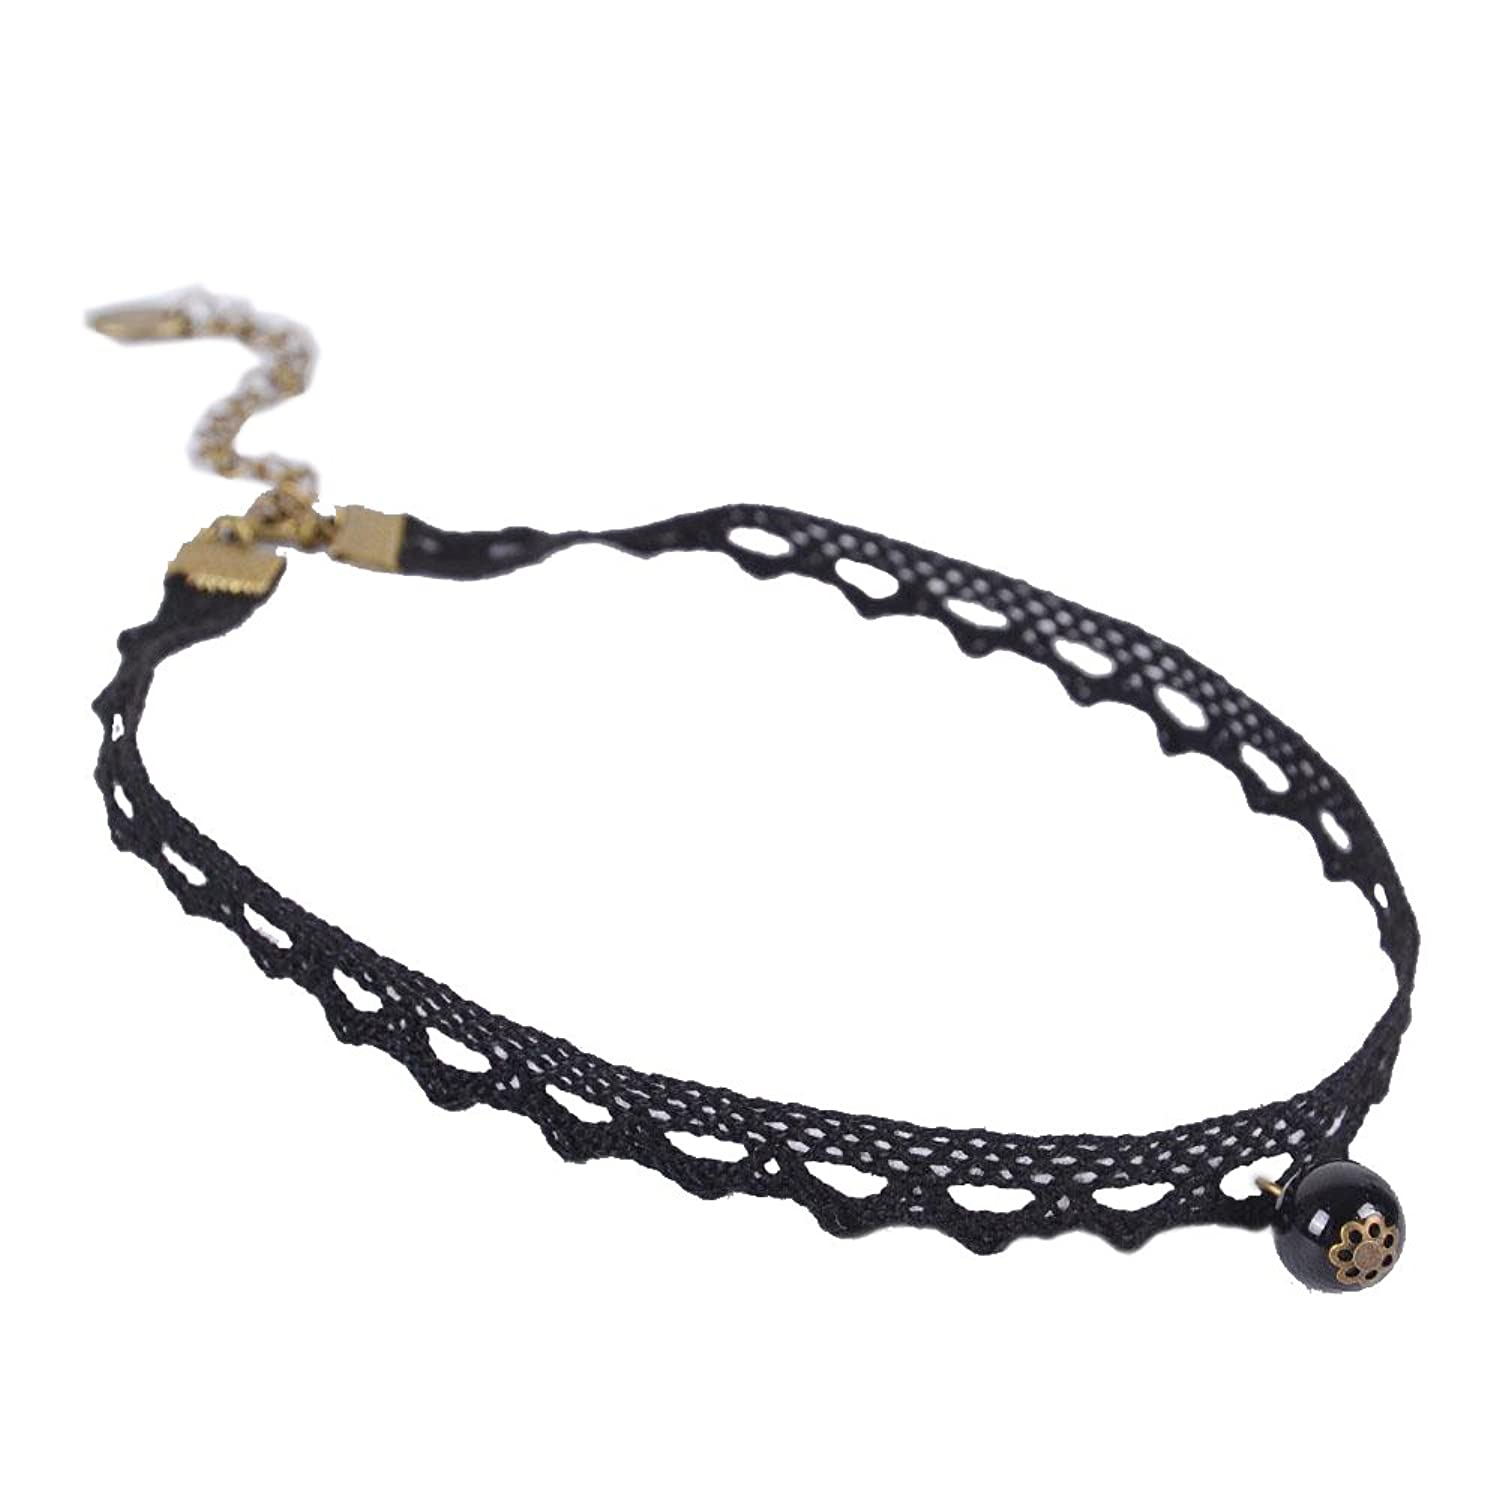 Buy Imported Vintage Retro Black Lace Beads Charm Tattoo choker ...